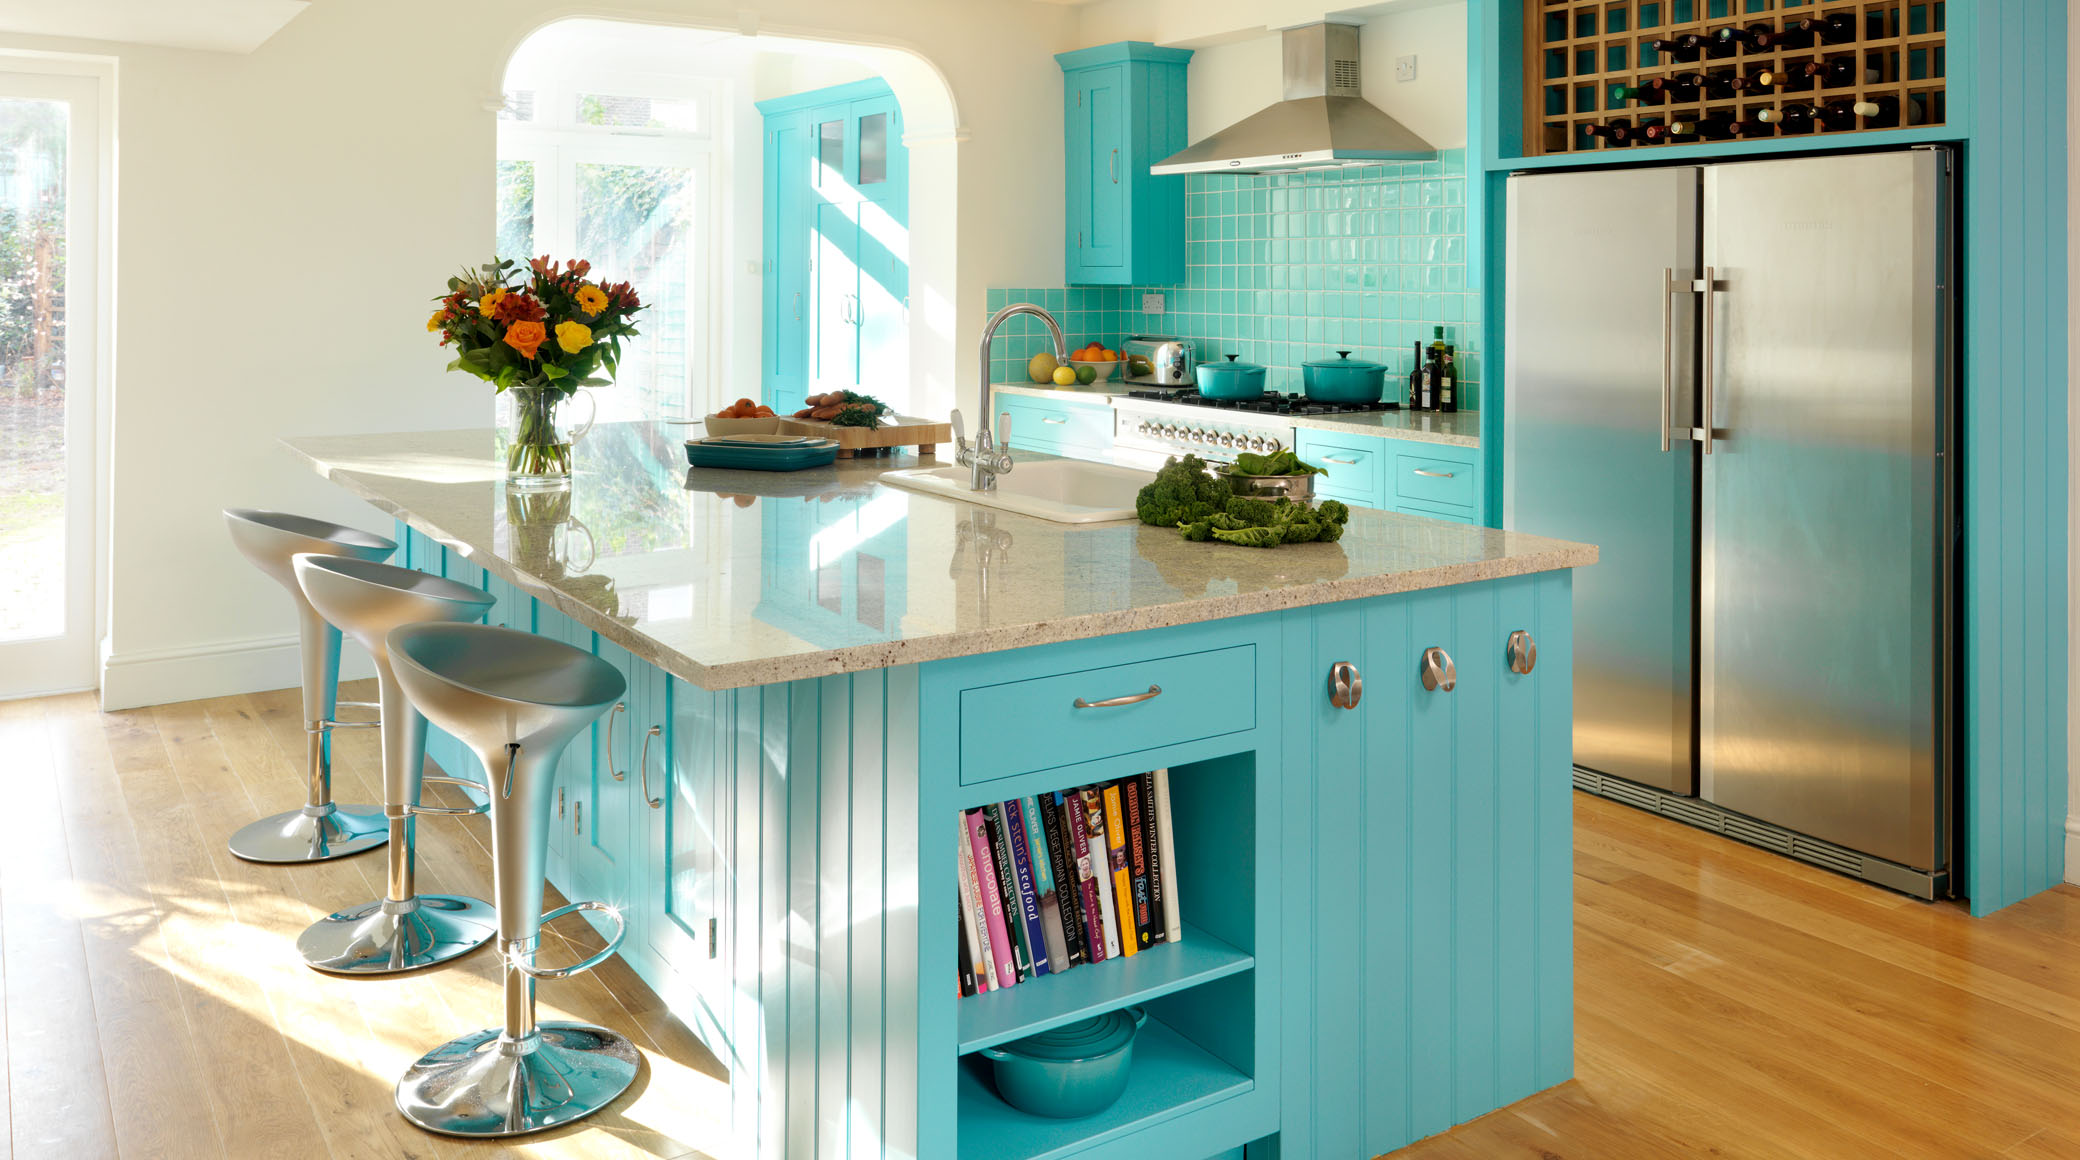 Painting of Inspiring Blue Kitchen Décor Ideas | Home Decorations ...